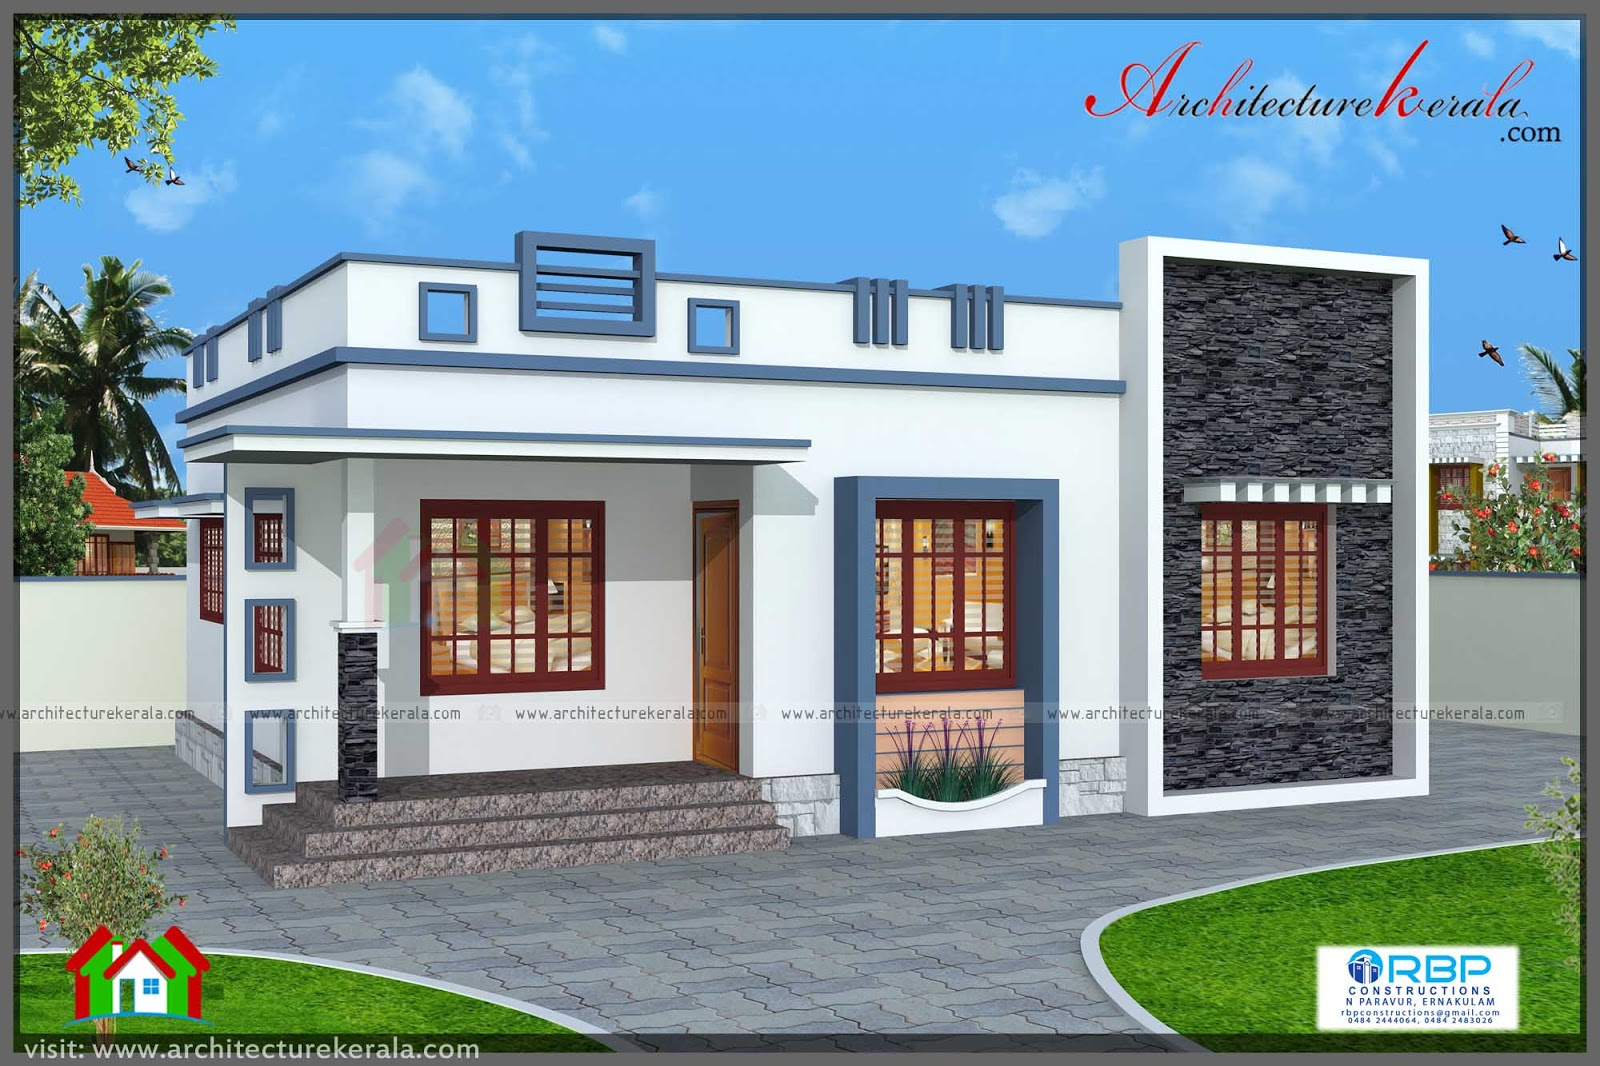 760 square feet 3 bedroom house plan architecture kerala for House olans